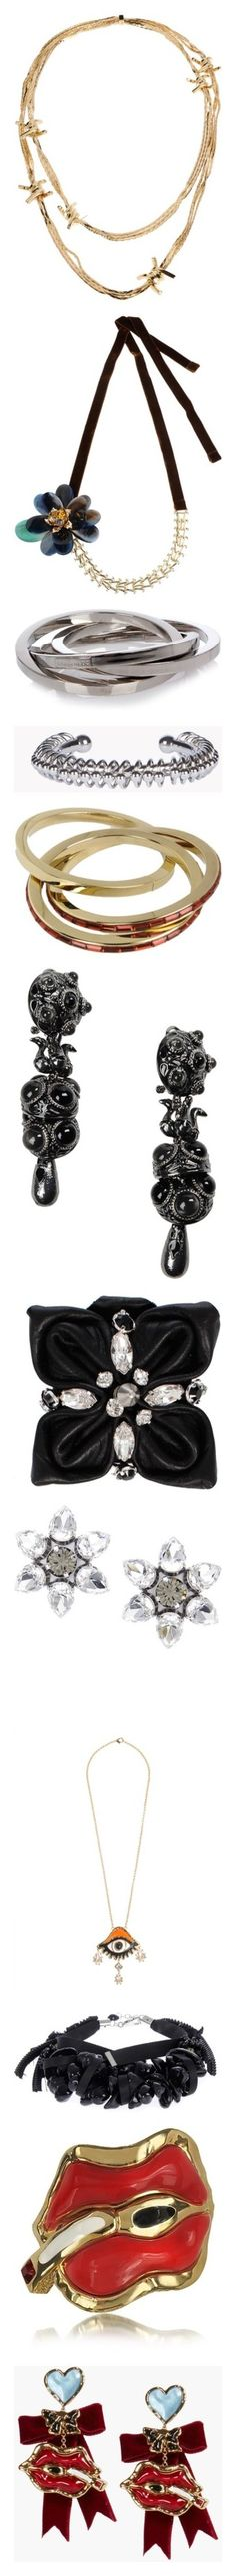 """Dsquared2"" by gigiglow ❤ liked on Polyvore featuring jewelry, necklaces, gold, dsquared2, velvet necklace, velvet jewelry, bracelets, silver, silver bangles and silver tone jewelry"